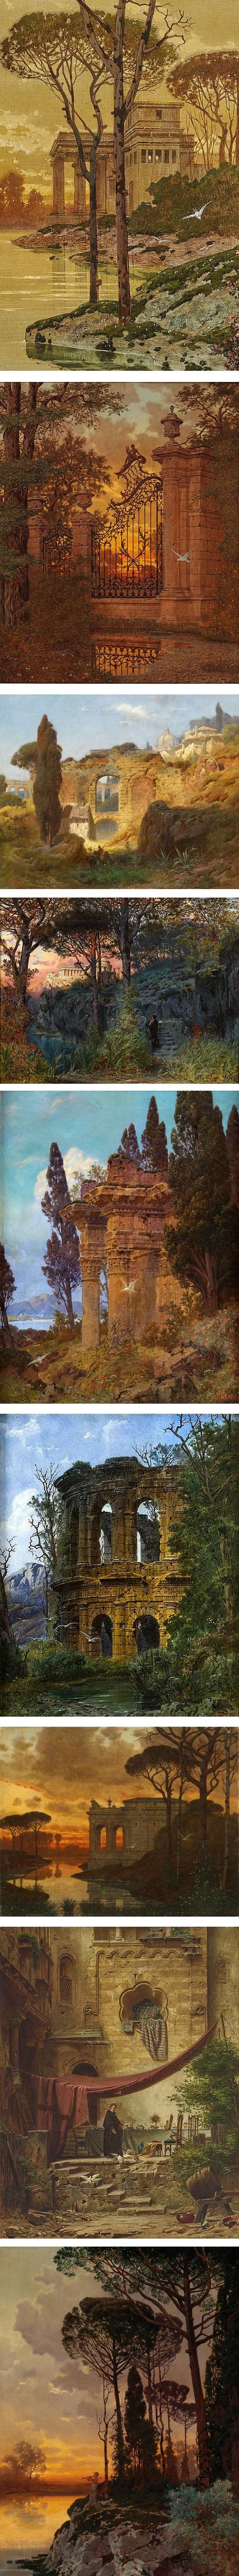 Ferdinand Knab, 19th century romanticised paintings of classical ruins in landscape